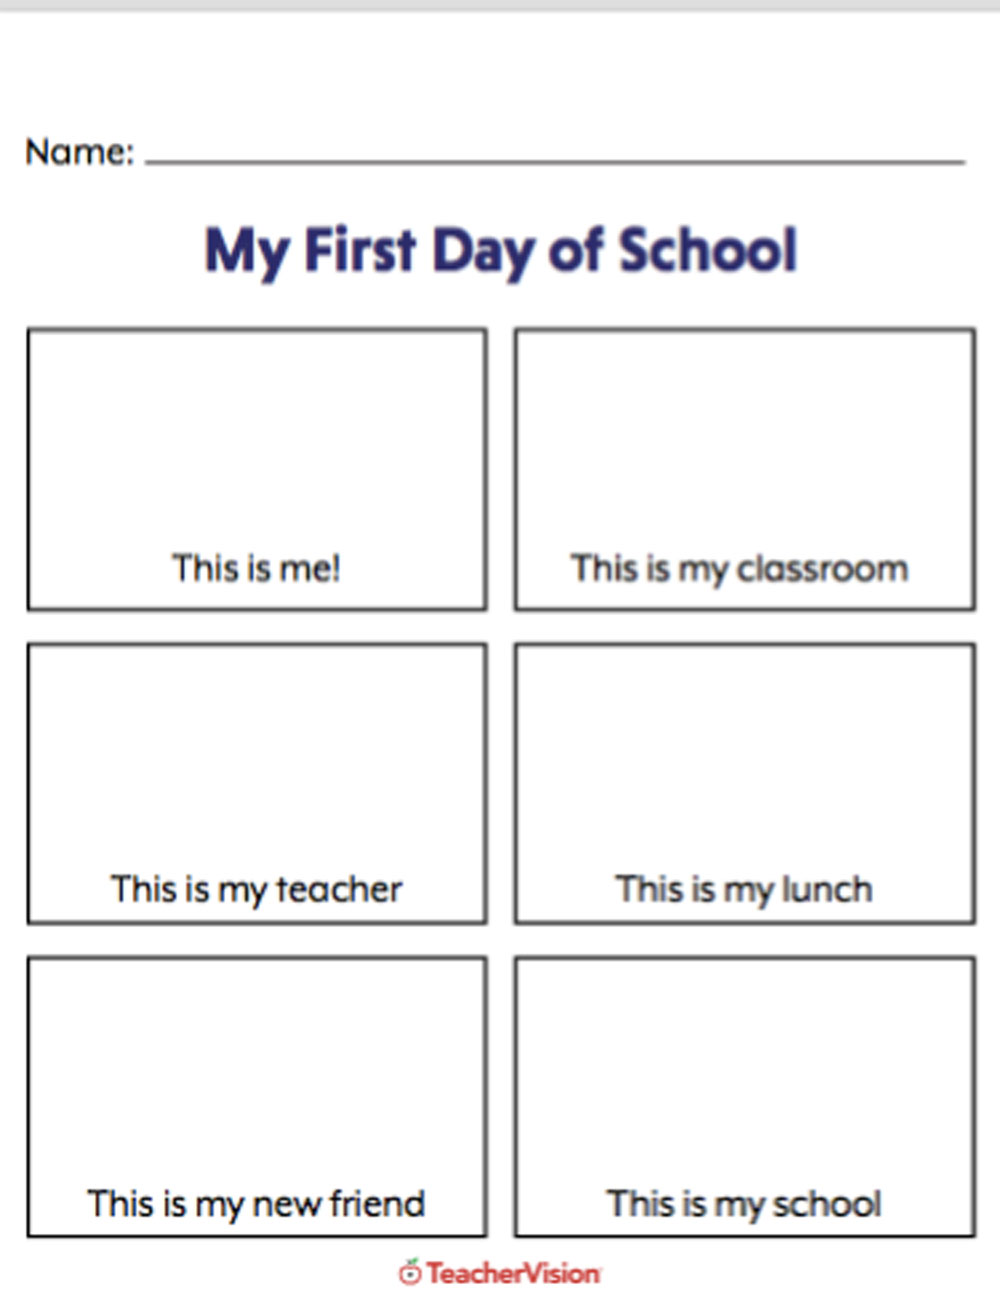 An activity to support students to reflect on their first day of school.